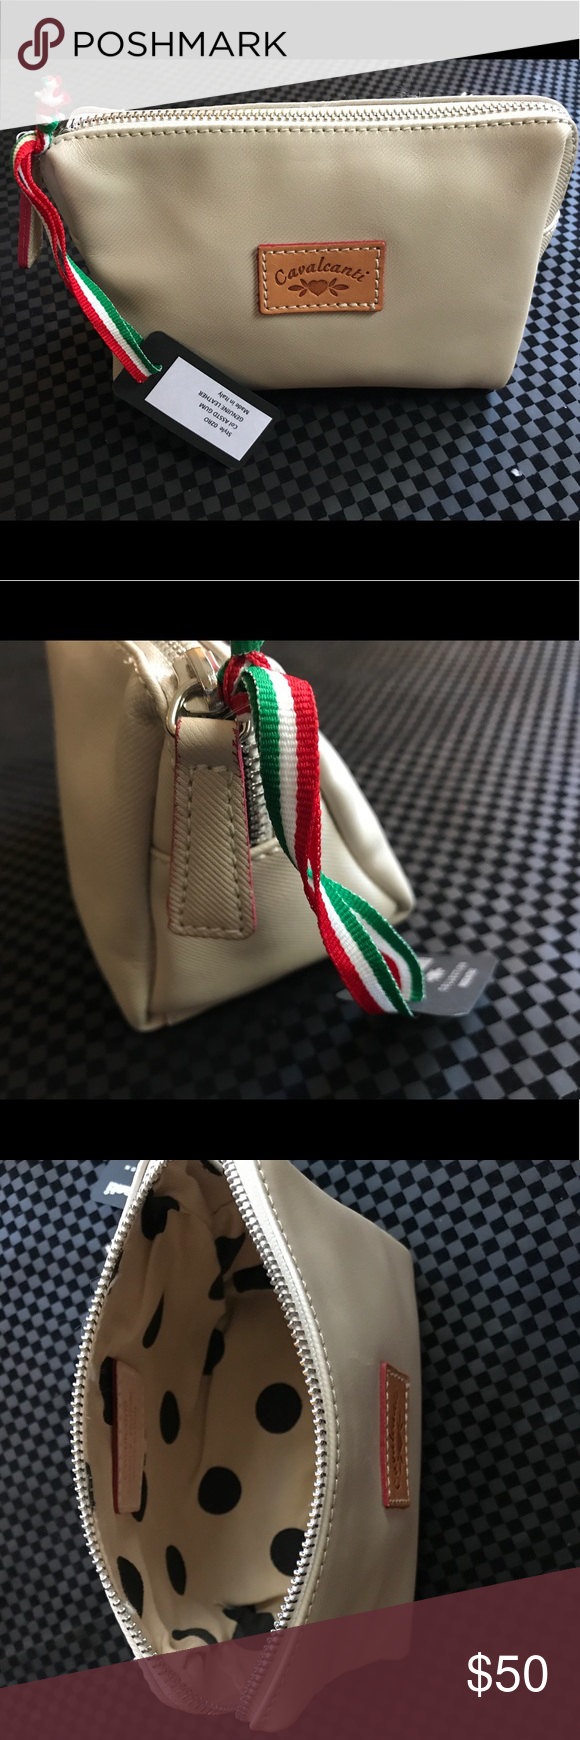 Leather Cavalcanti Cosmetic Bag Purse Pouch Handbags Are Well Known For Their